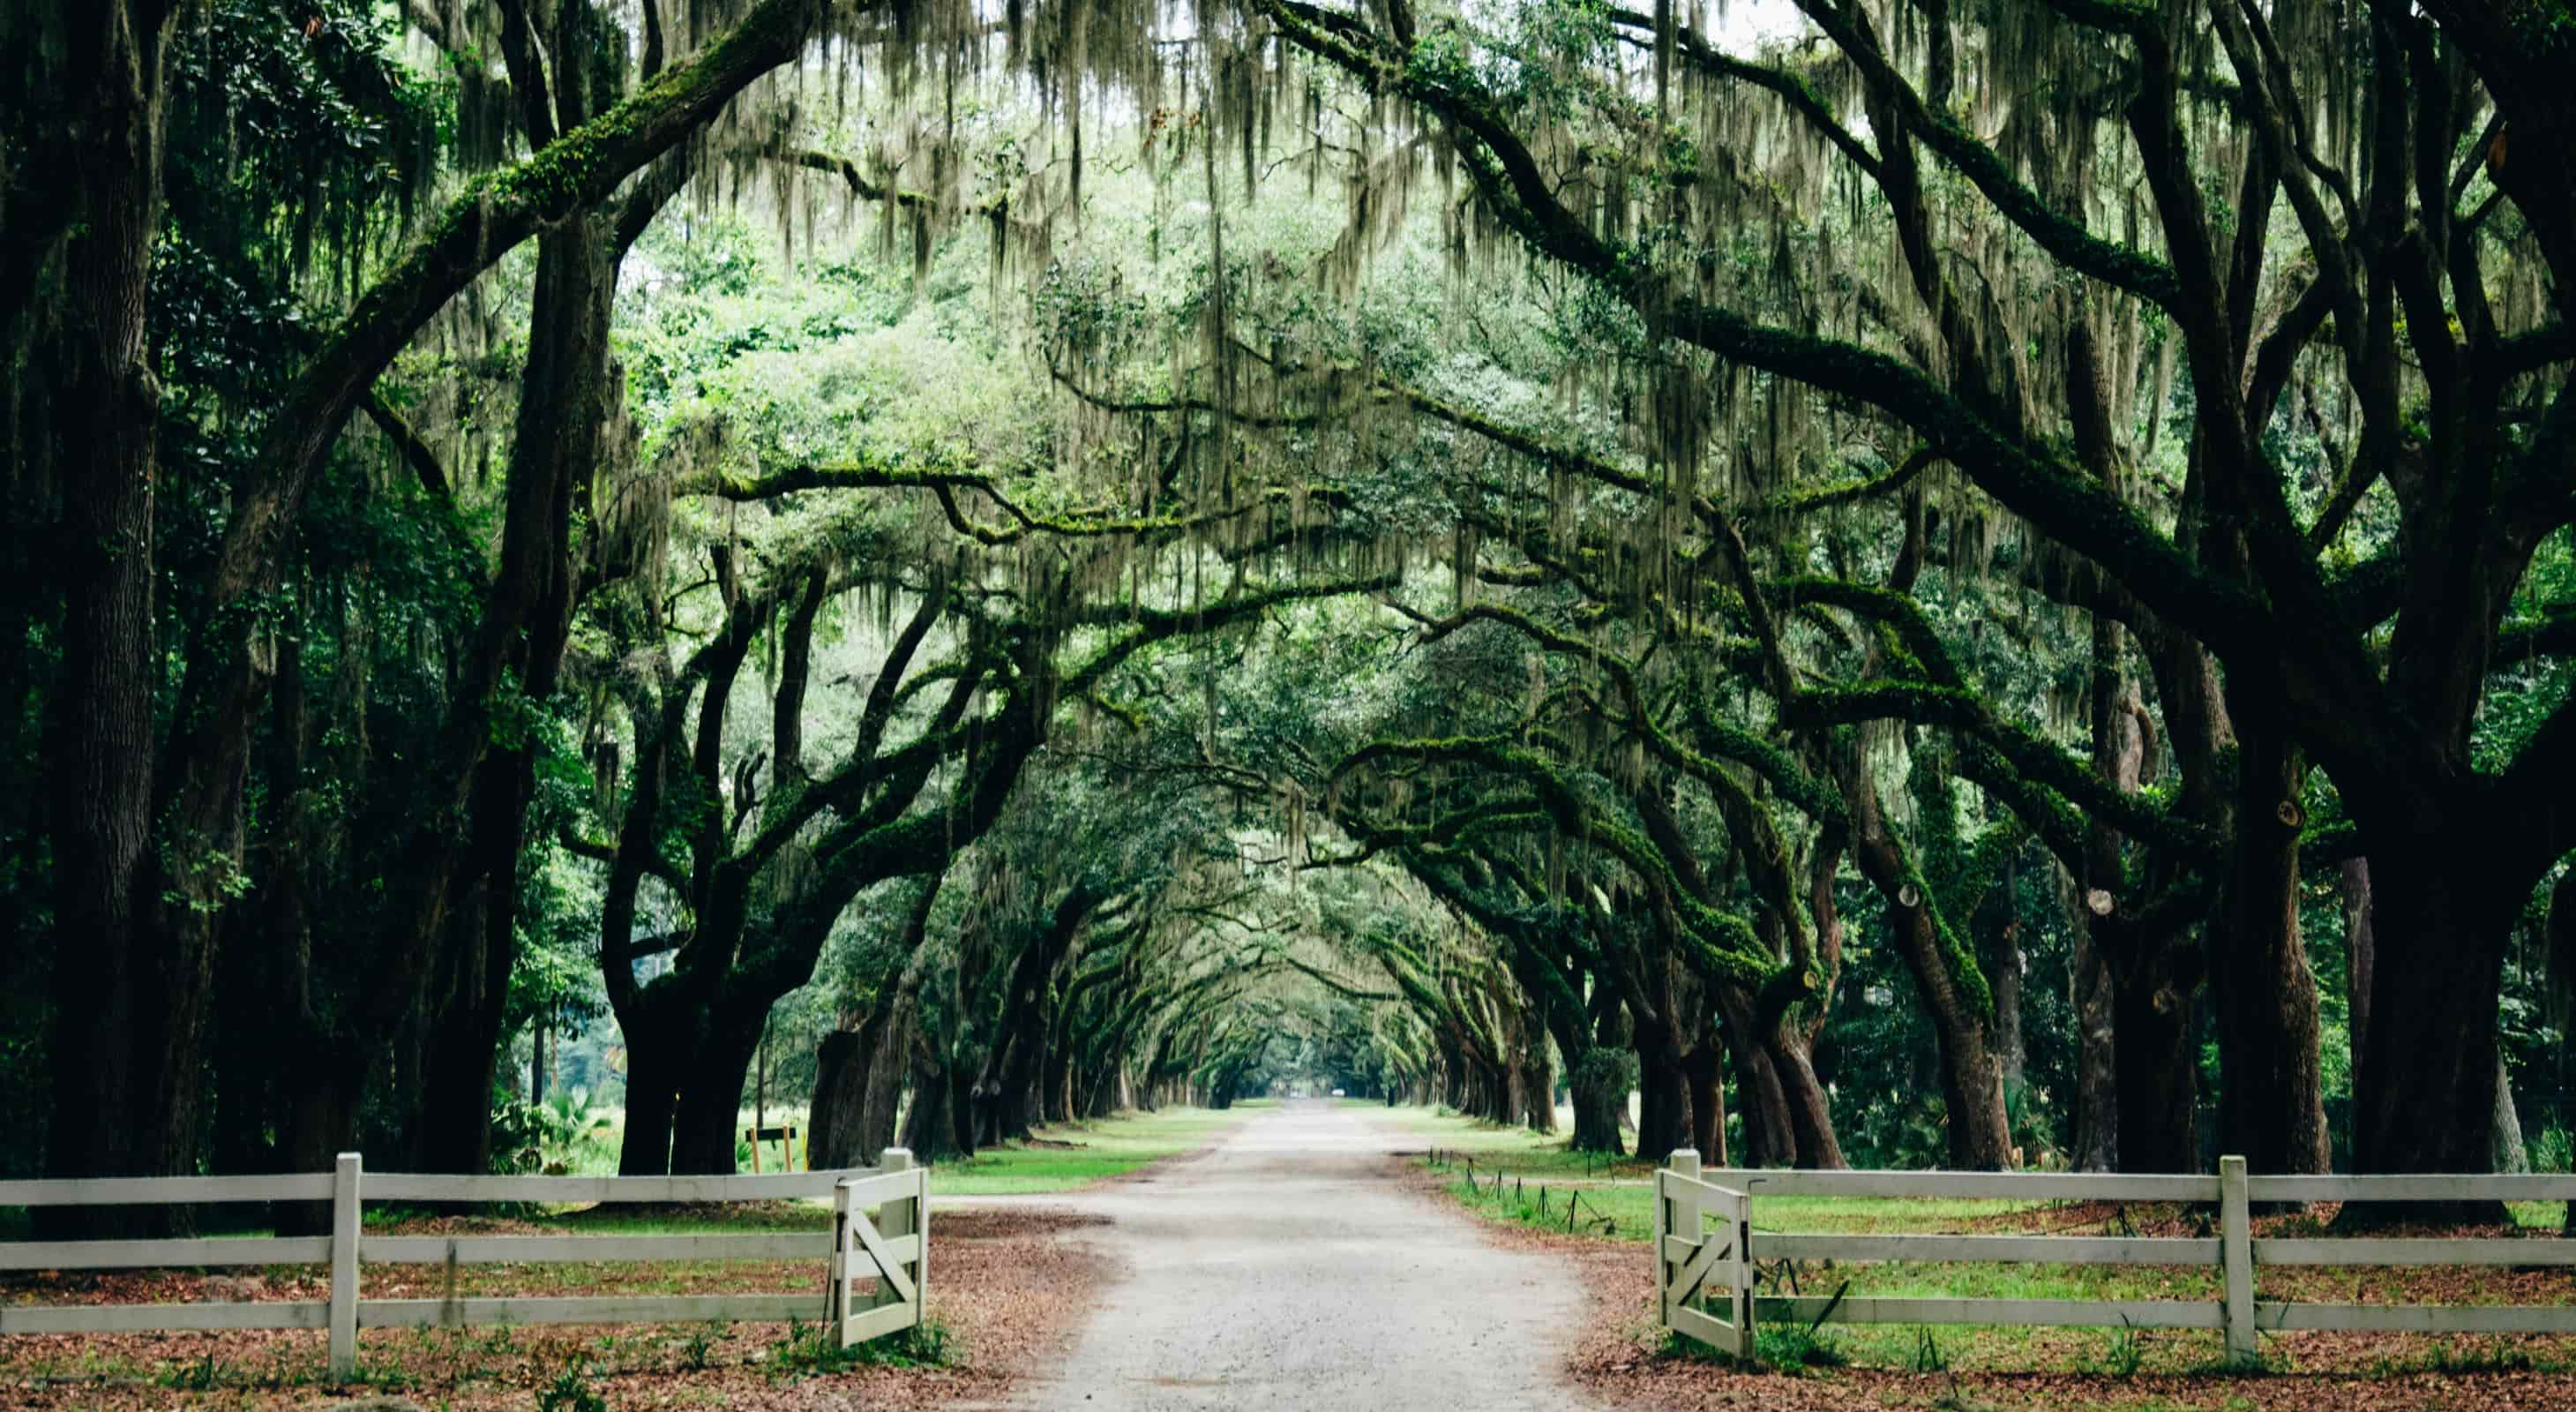 Oak tree lined road in Savannah Georgia